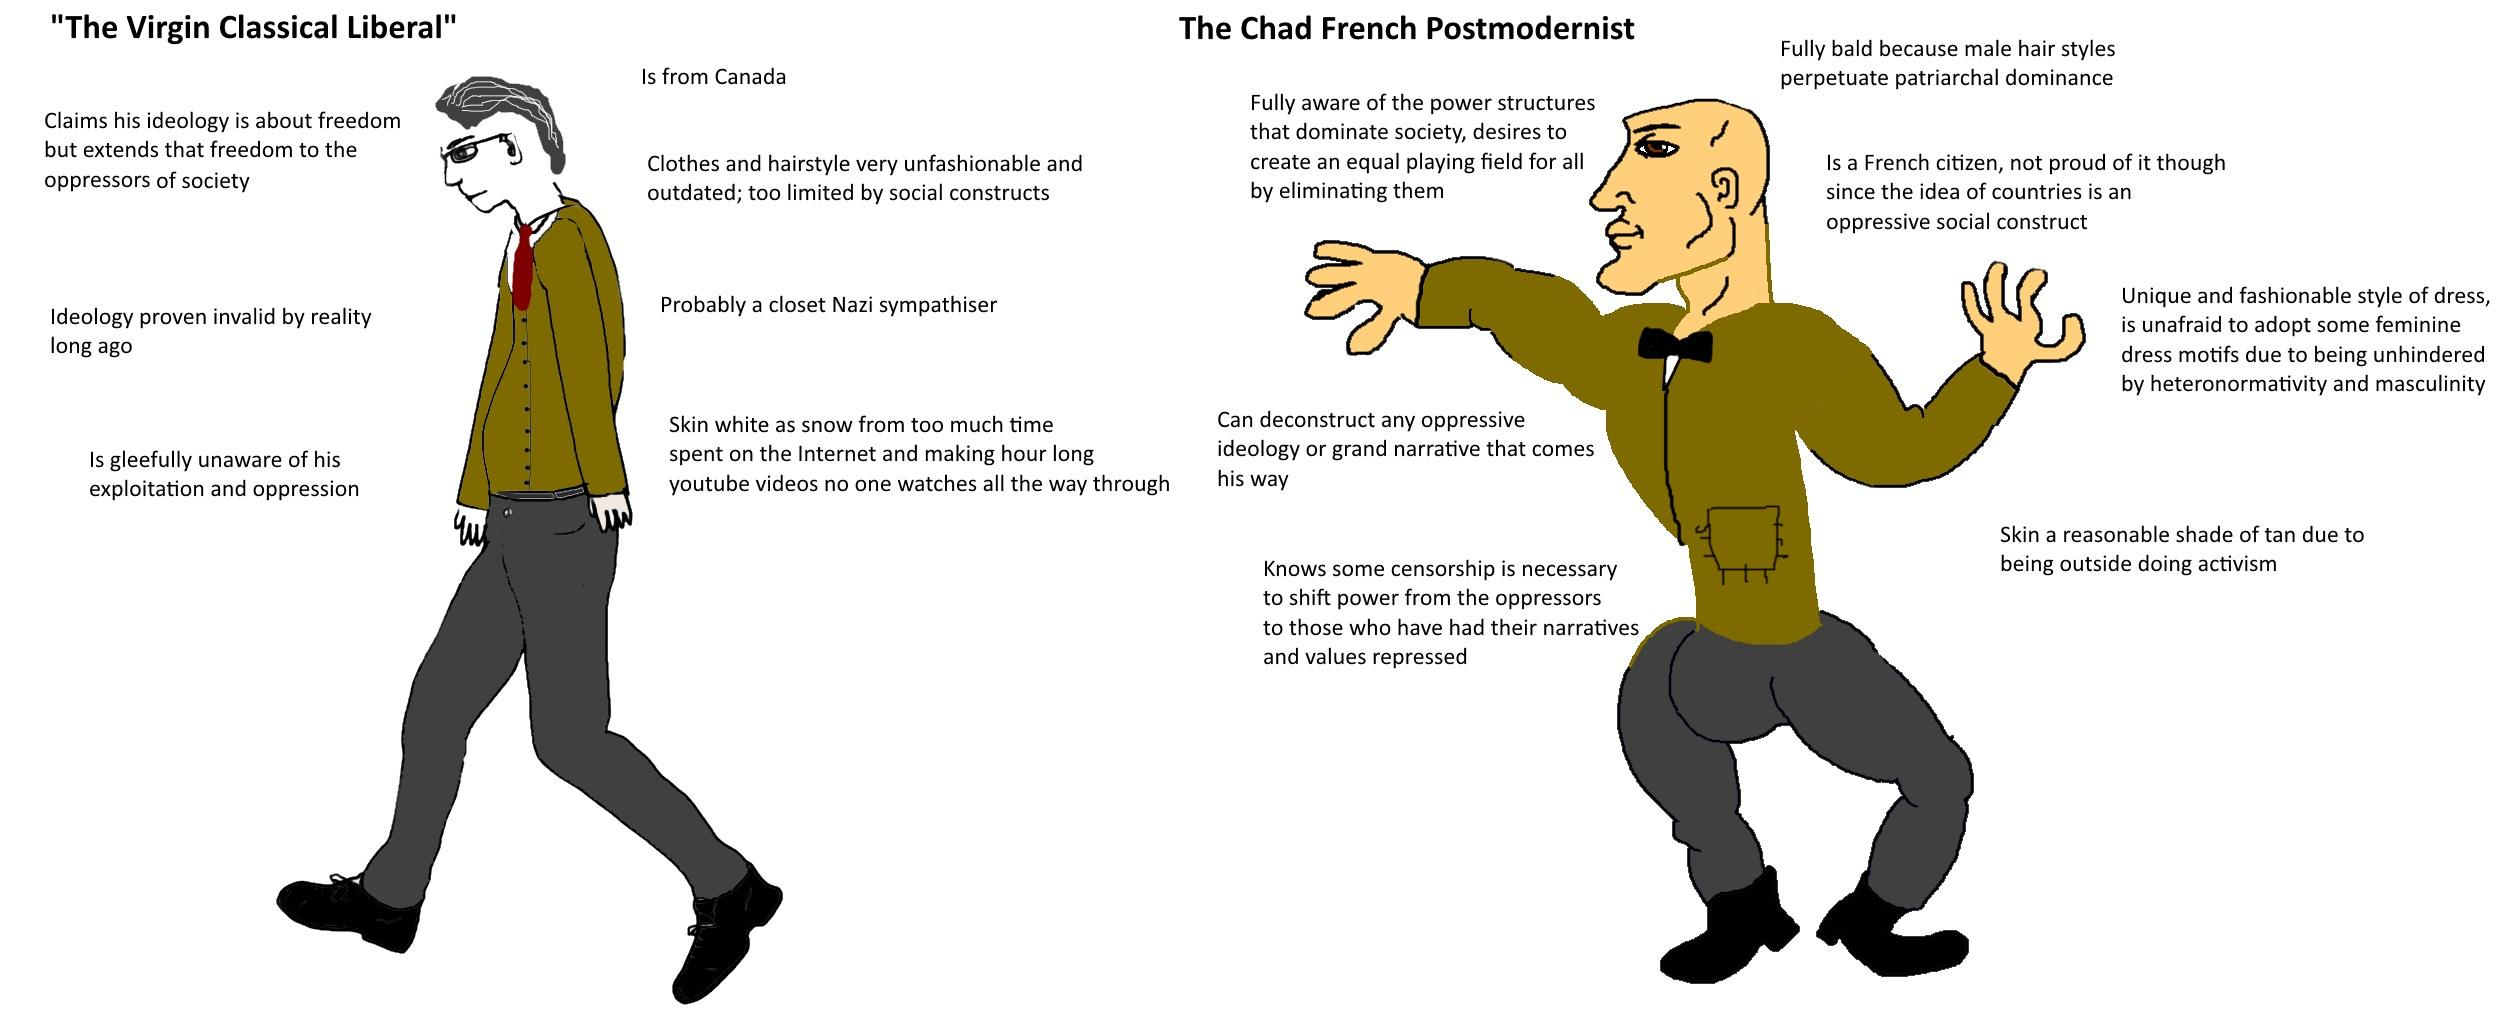 The Virgin Classical Liberal Vs The Chad French Postmodernist